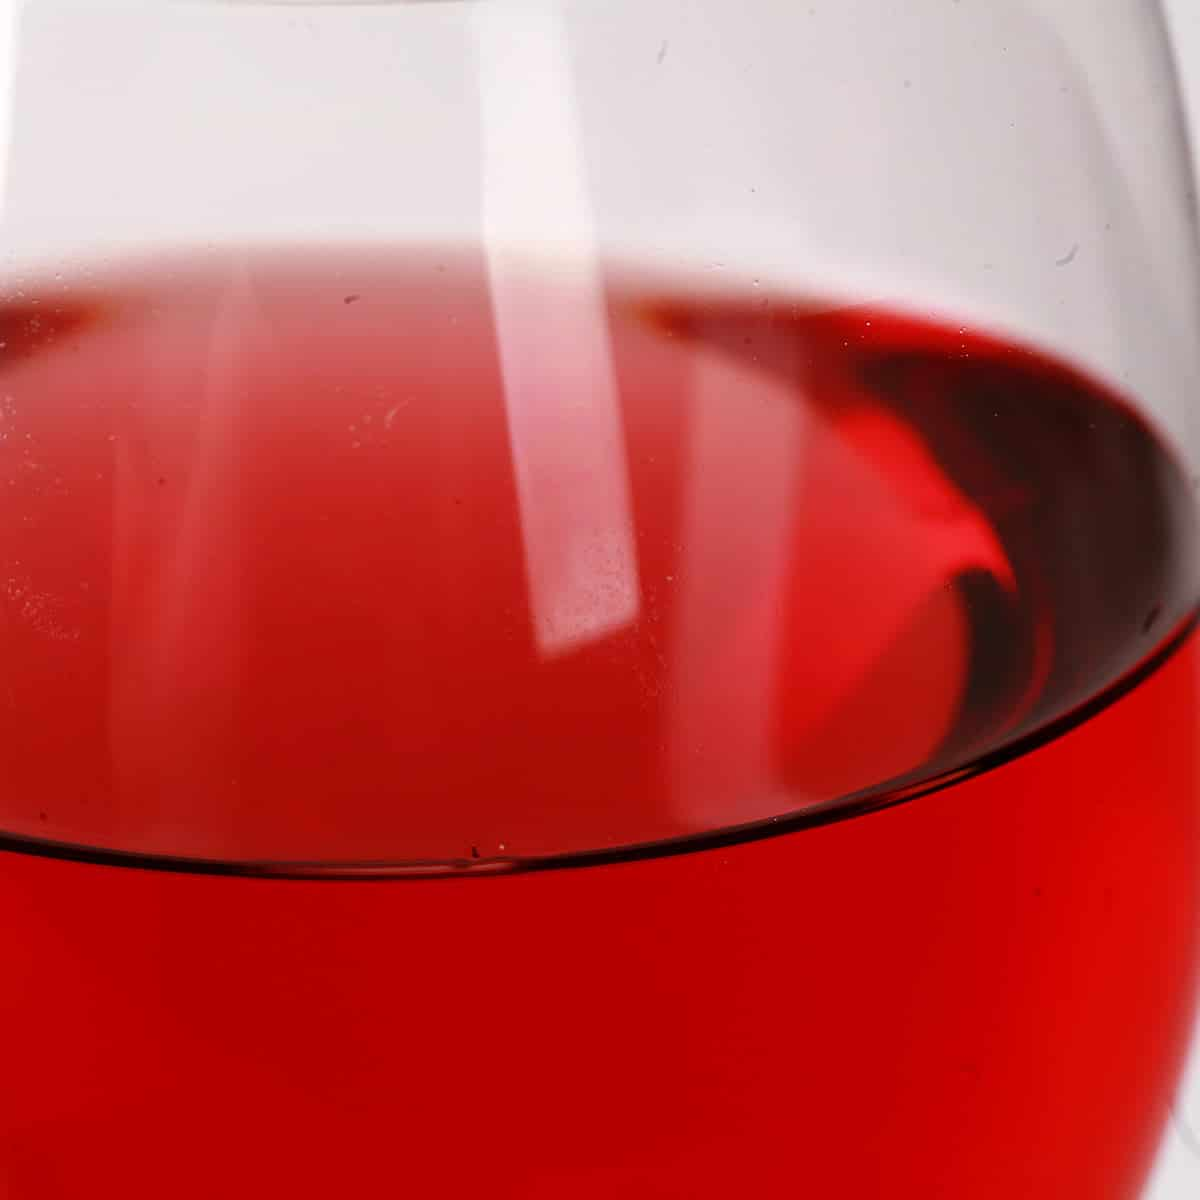 Close up photo of a glass of brilliantly red cranberry wine, in front of a white background.